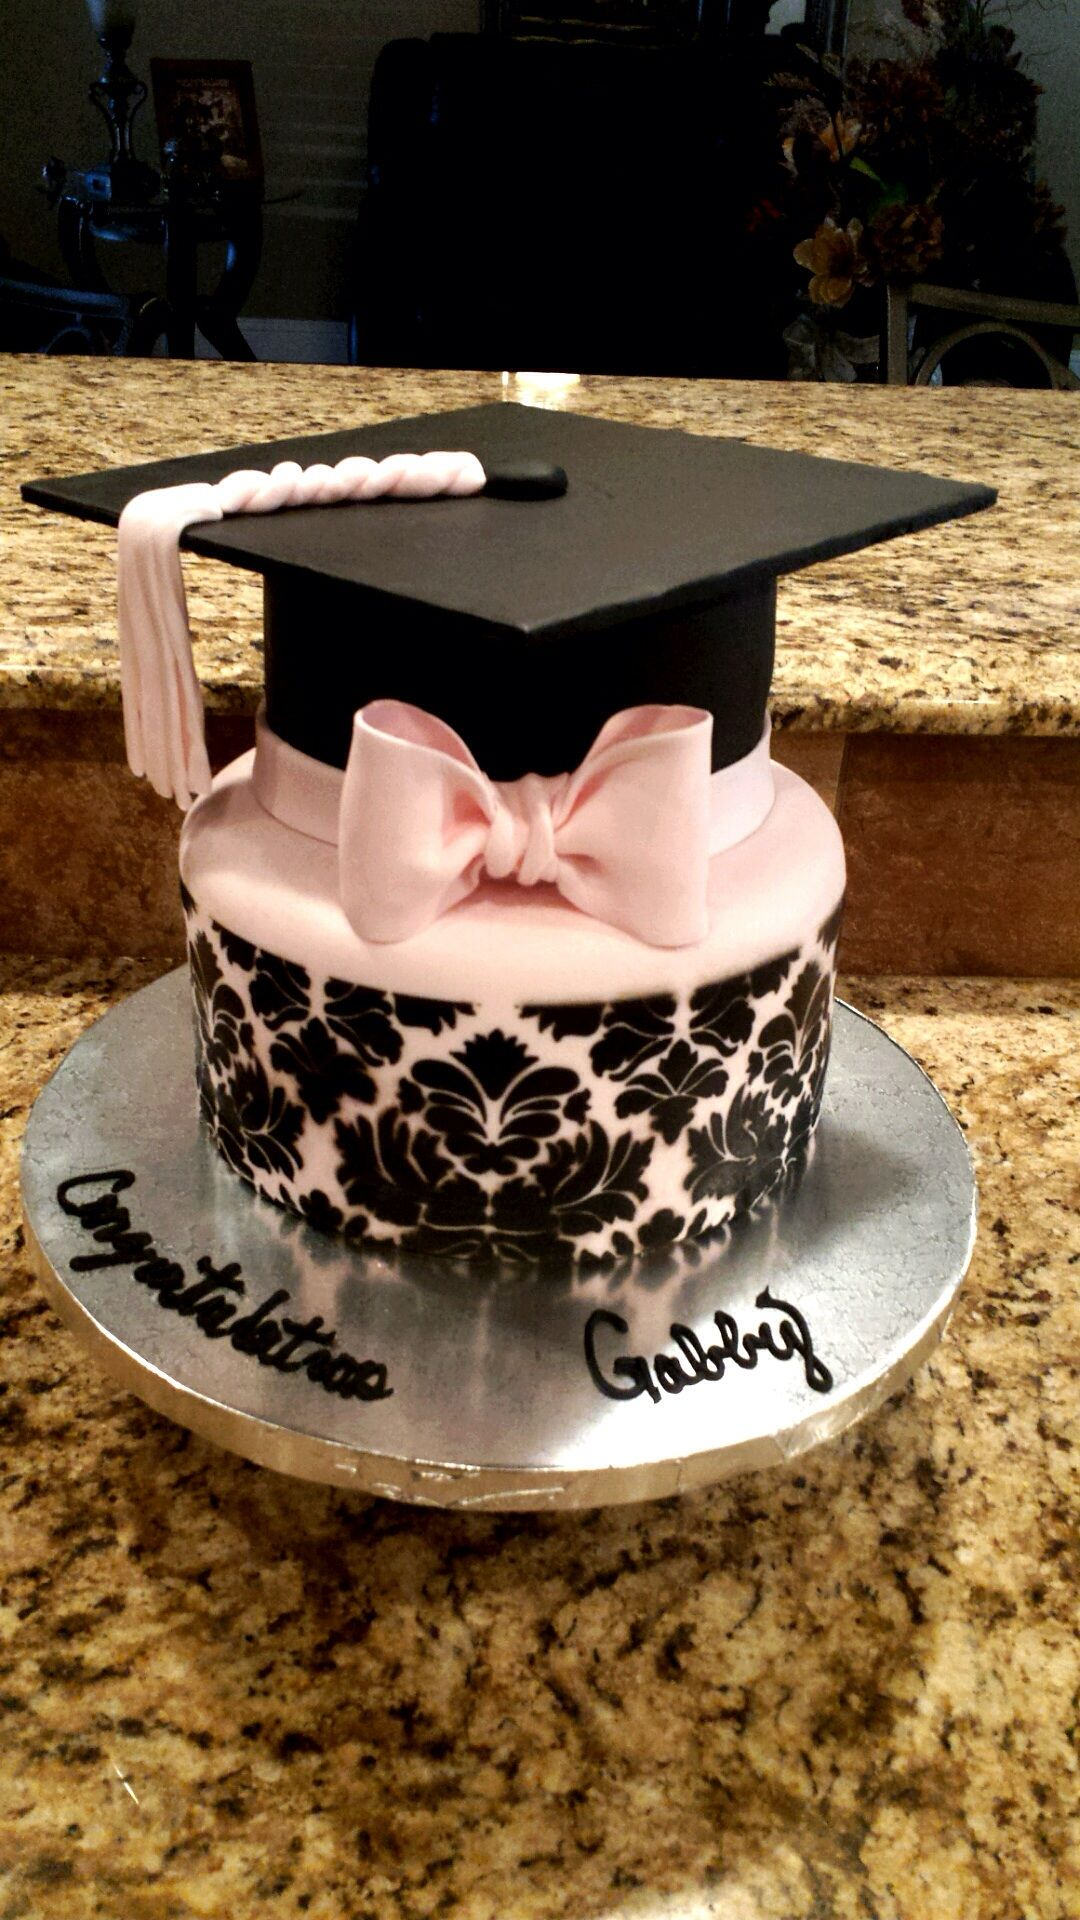 Pin By Gisselle Arce On Graduation Party In 2021 Graduation Cakes Cake Cake Designs